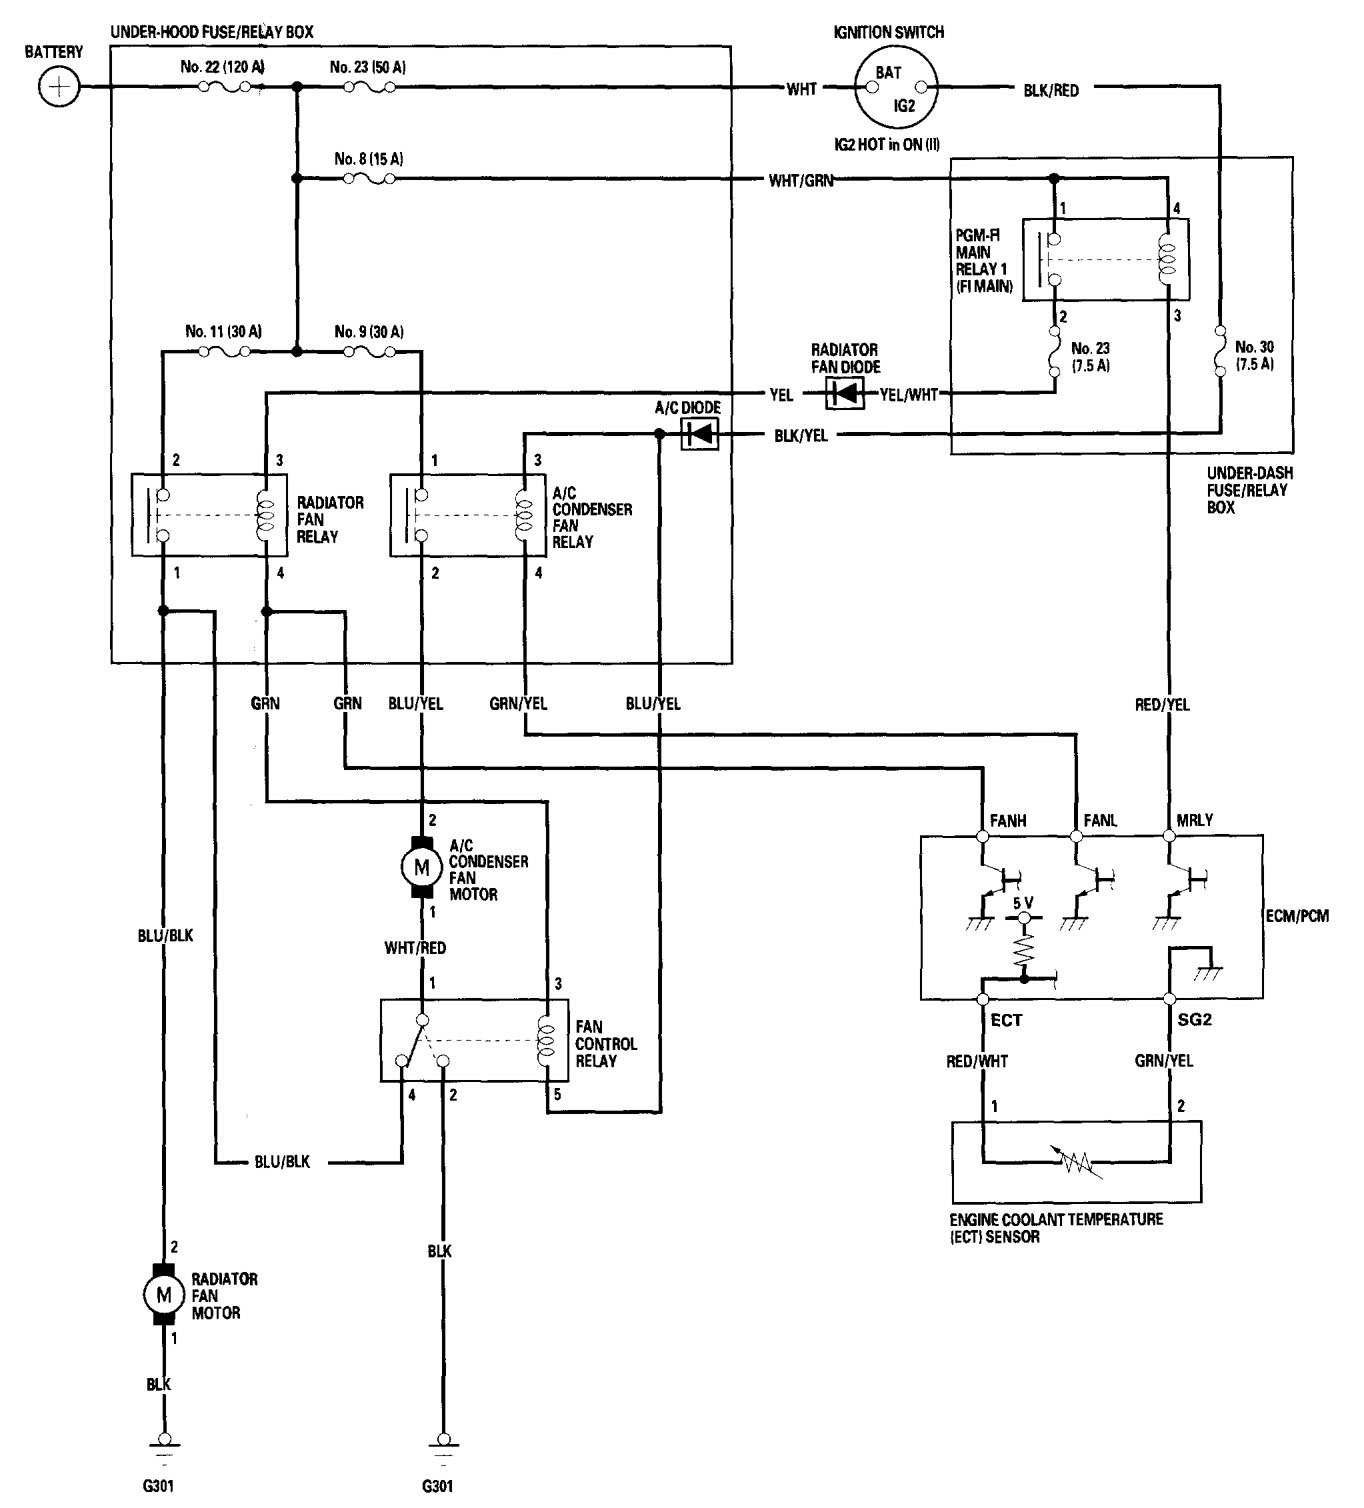 Acura TL (2006) - wiring diagrams - cooling fans - Carknowledge.info | Acura Engine Cooling Diagram |  | Carknowledge.info